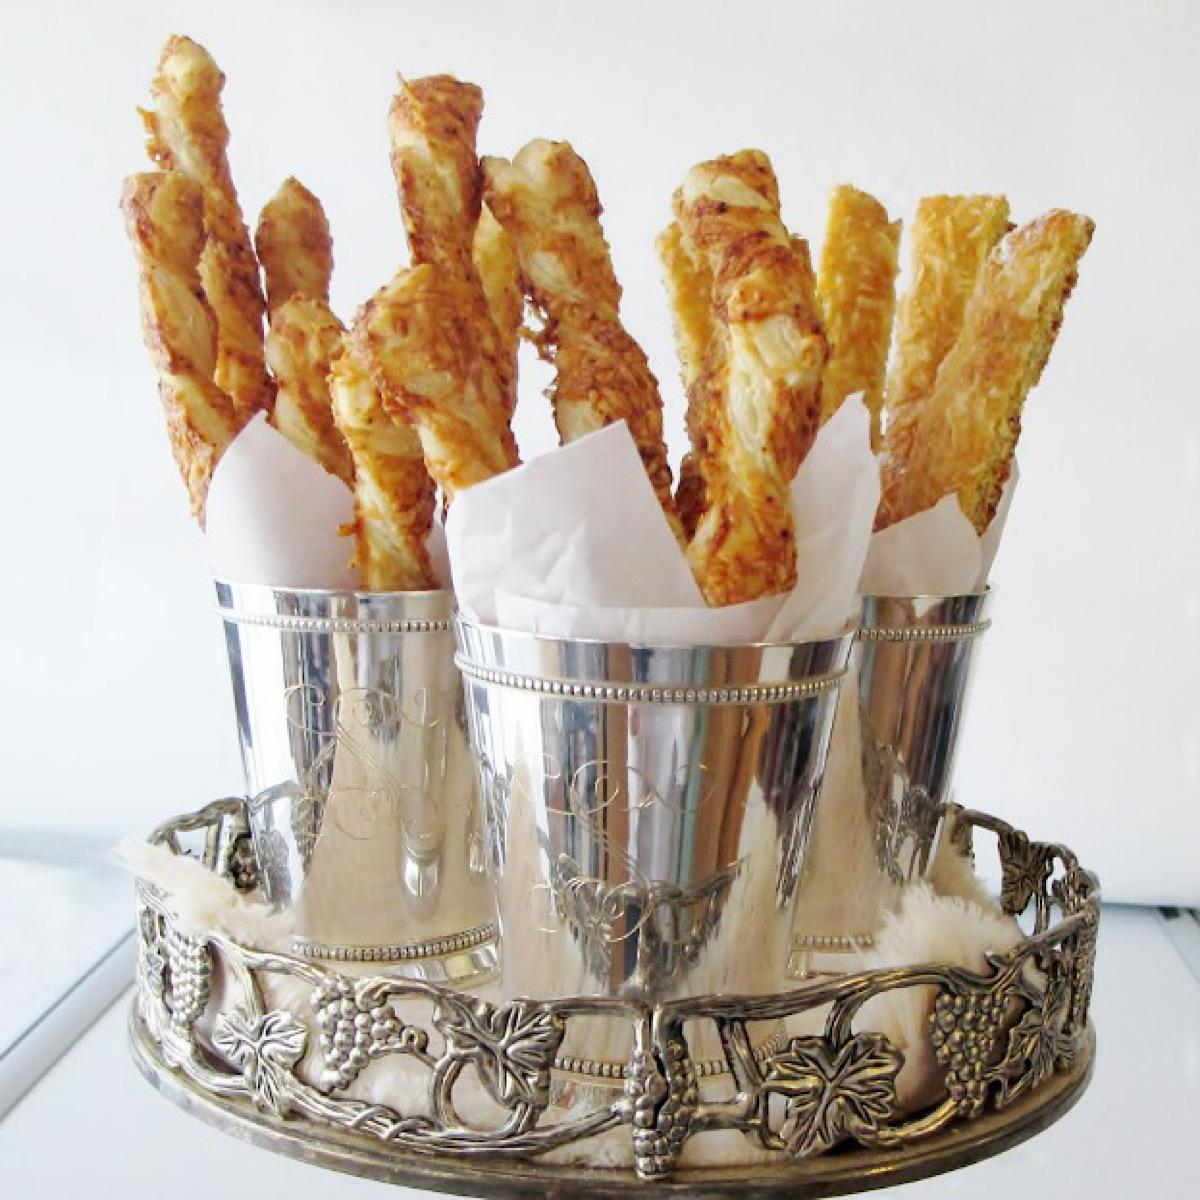 Cheese straws in cups to go with Mint Juleps for Kentucky Derby